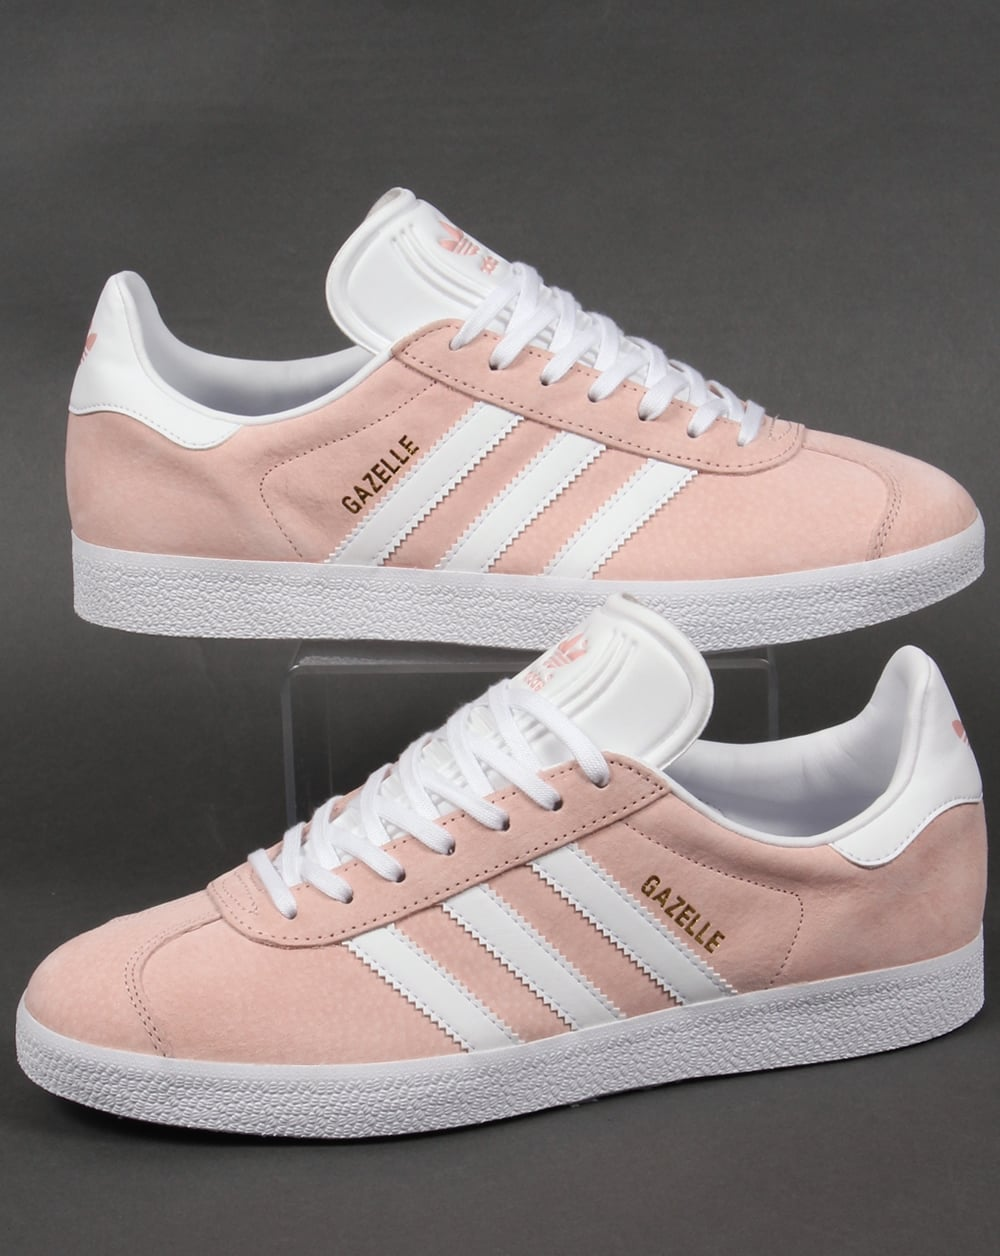 Adidas Gazelle Trainers Light PinkWhite